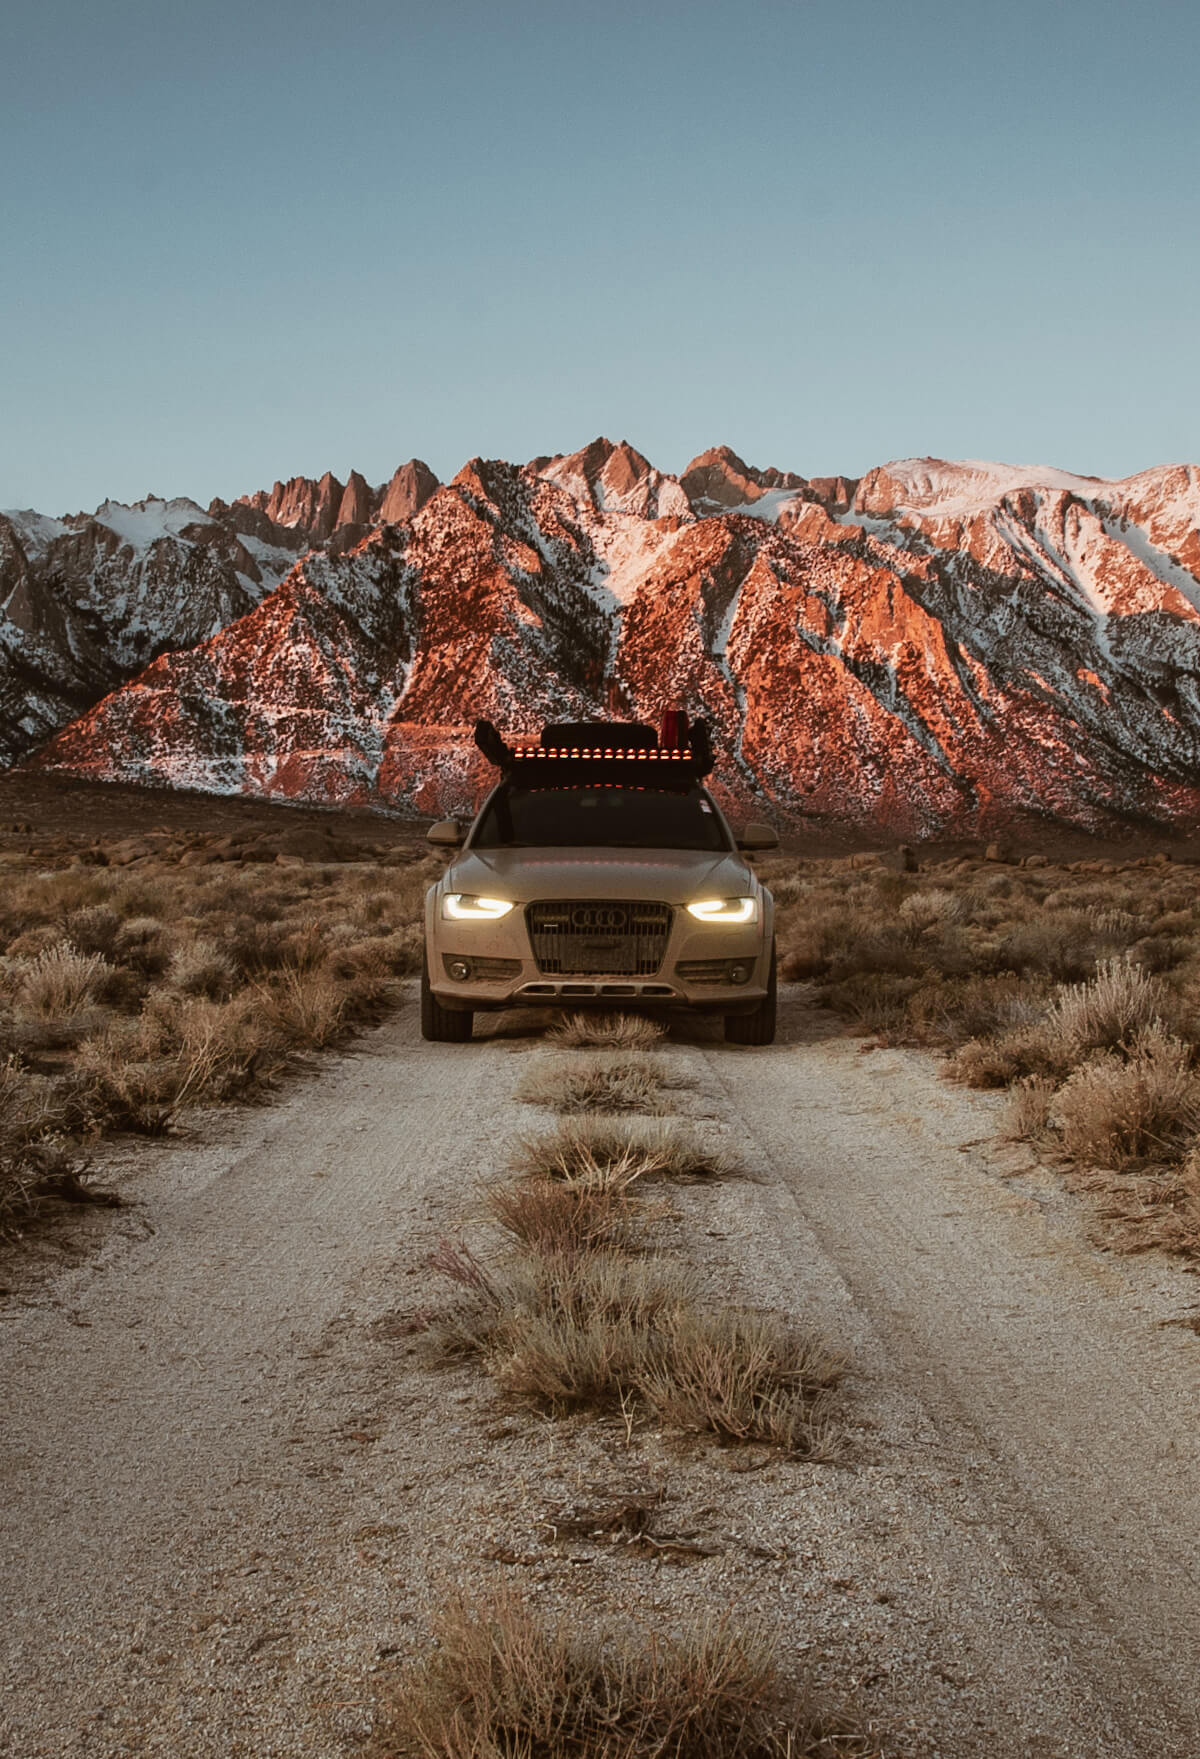 Audi A4 Allroad Off-roading in the desert